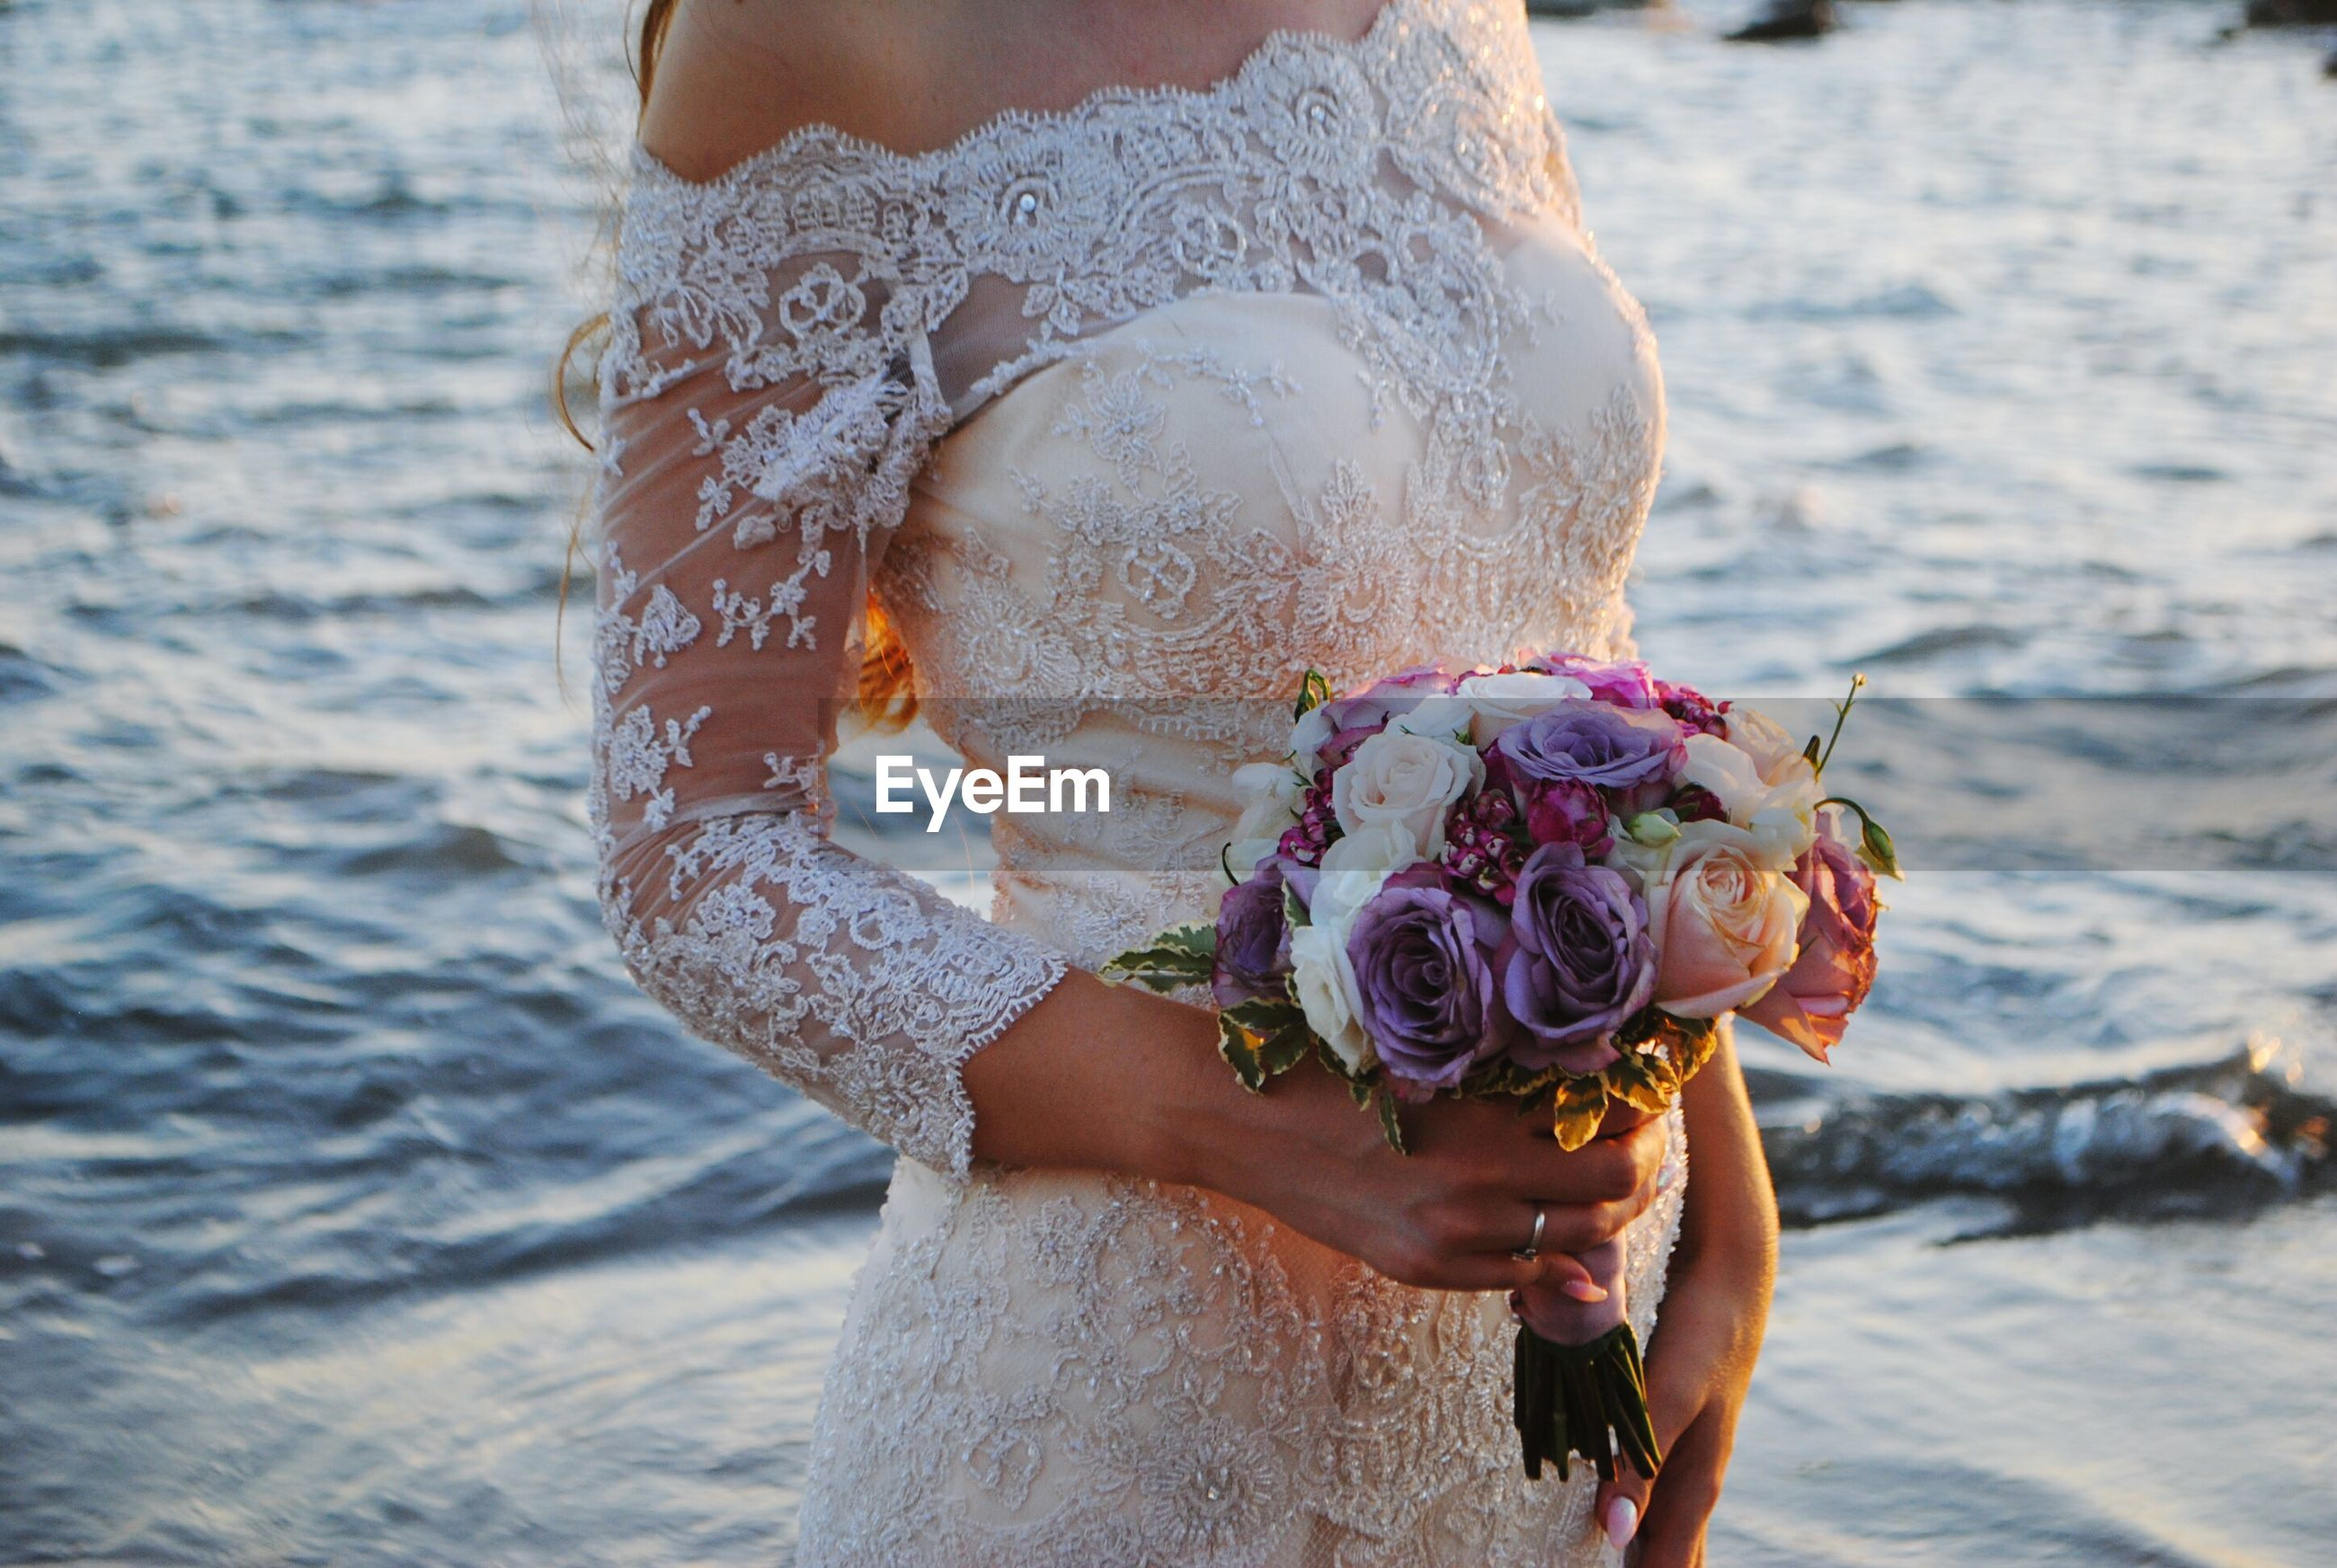 Close-up of bride holding flowers  while standing on beach